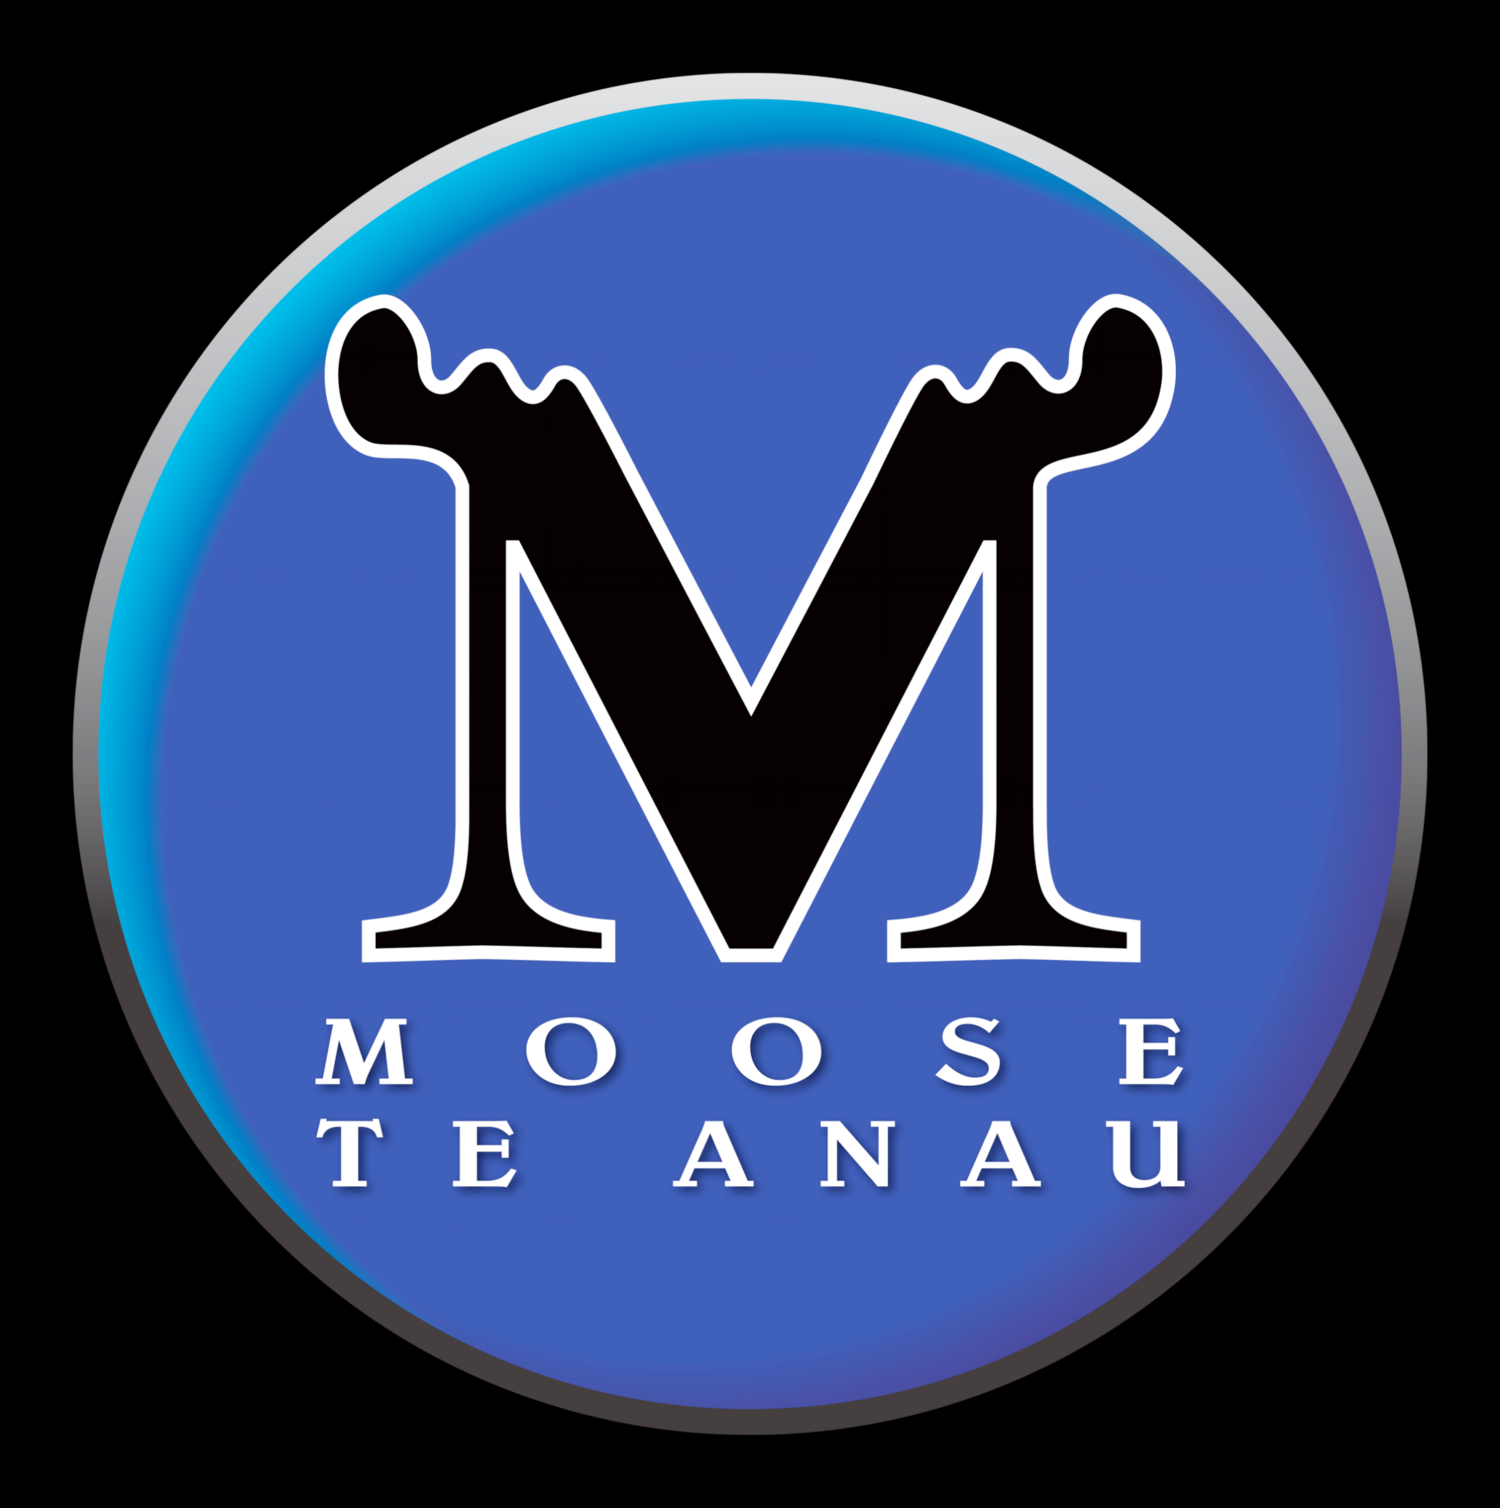 The Moose Bar & Restaurant | Te Anau